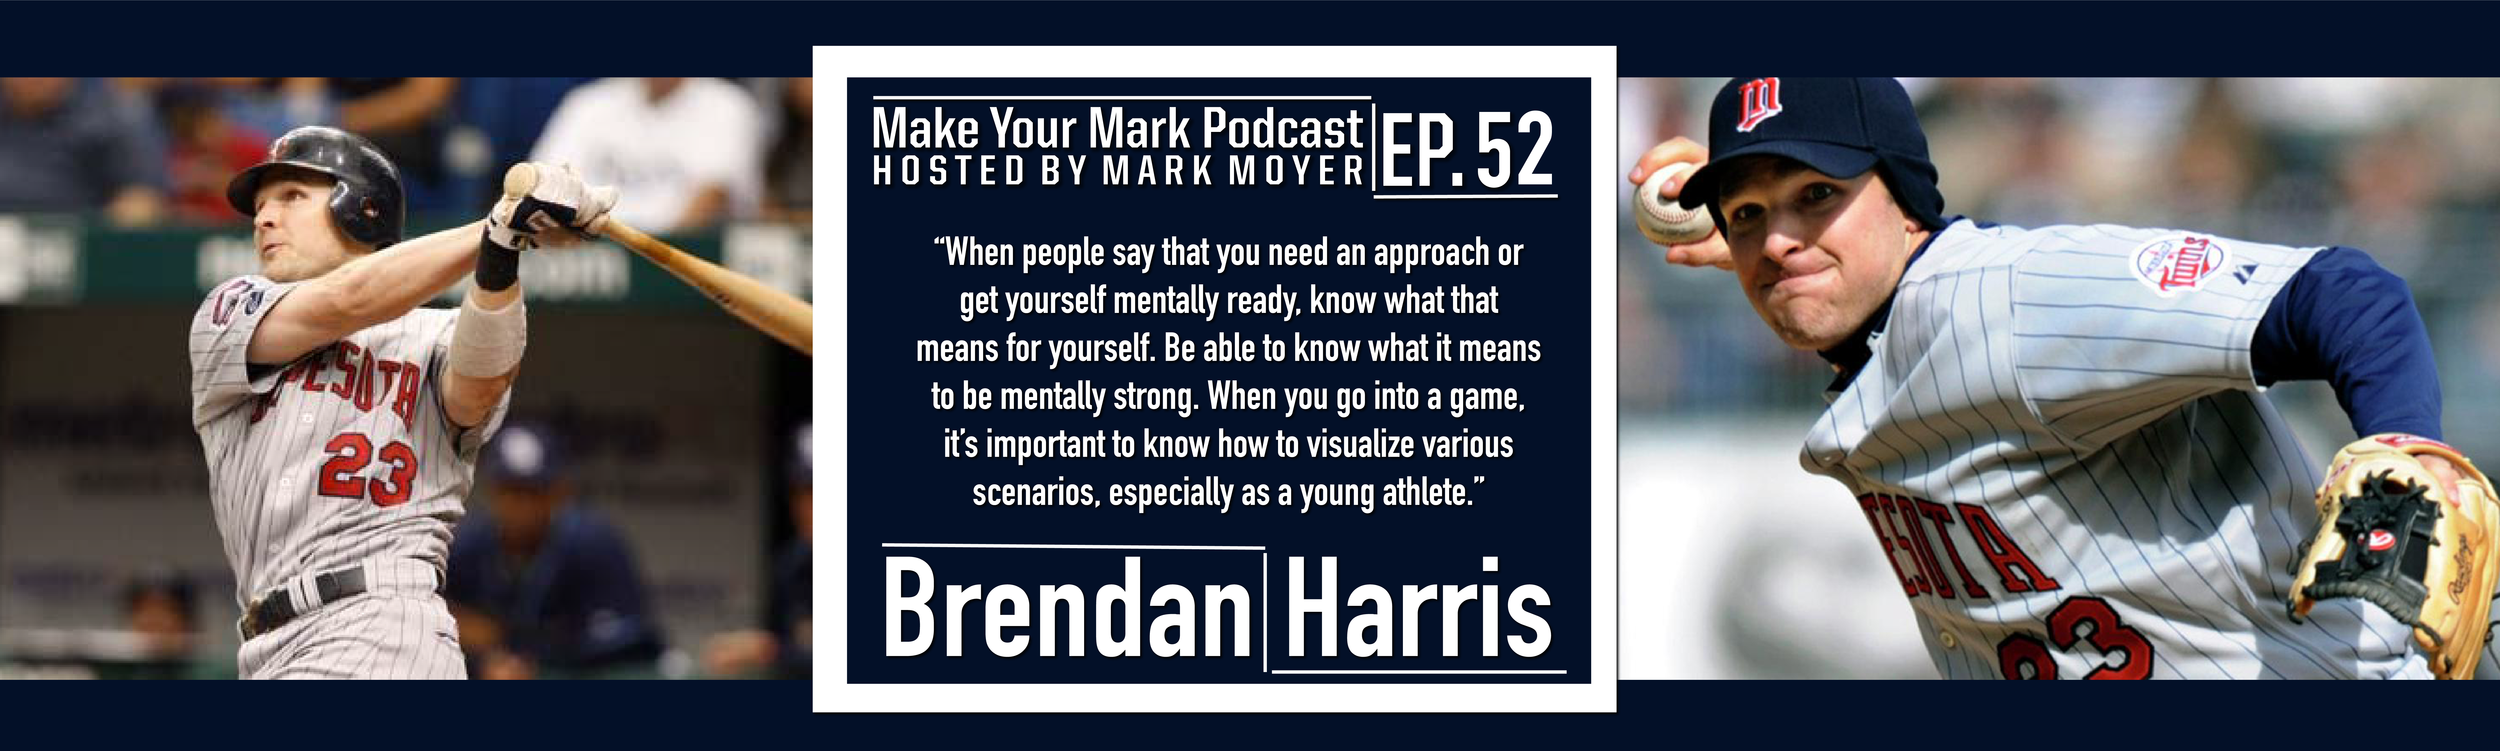 BrendanQuote2-02.png